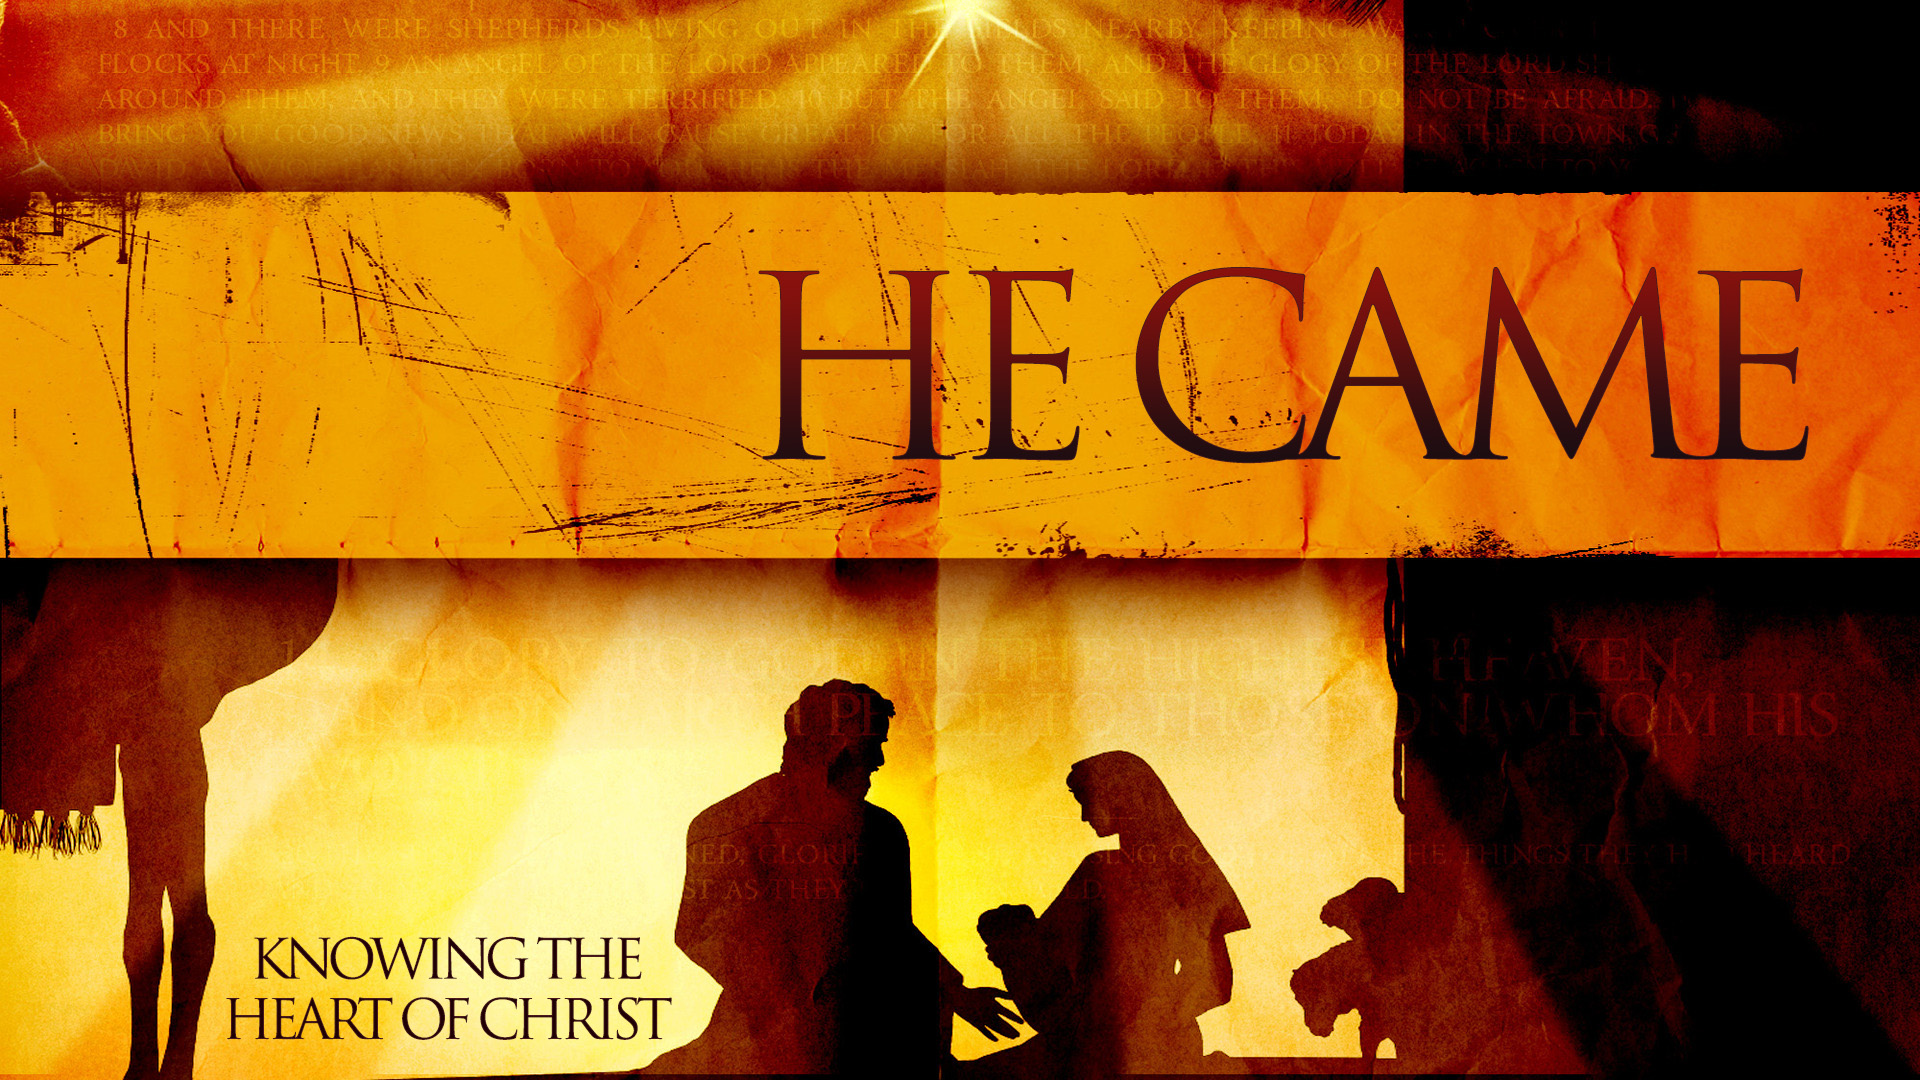 He Came - Knowing the Heart of Christ